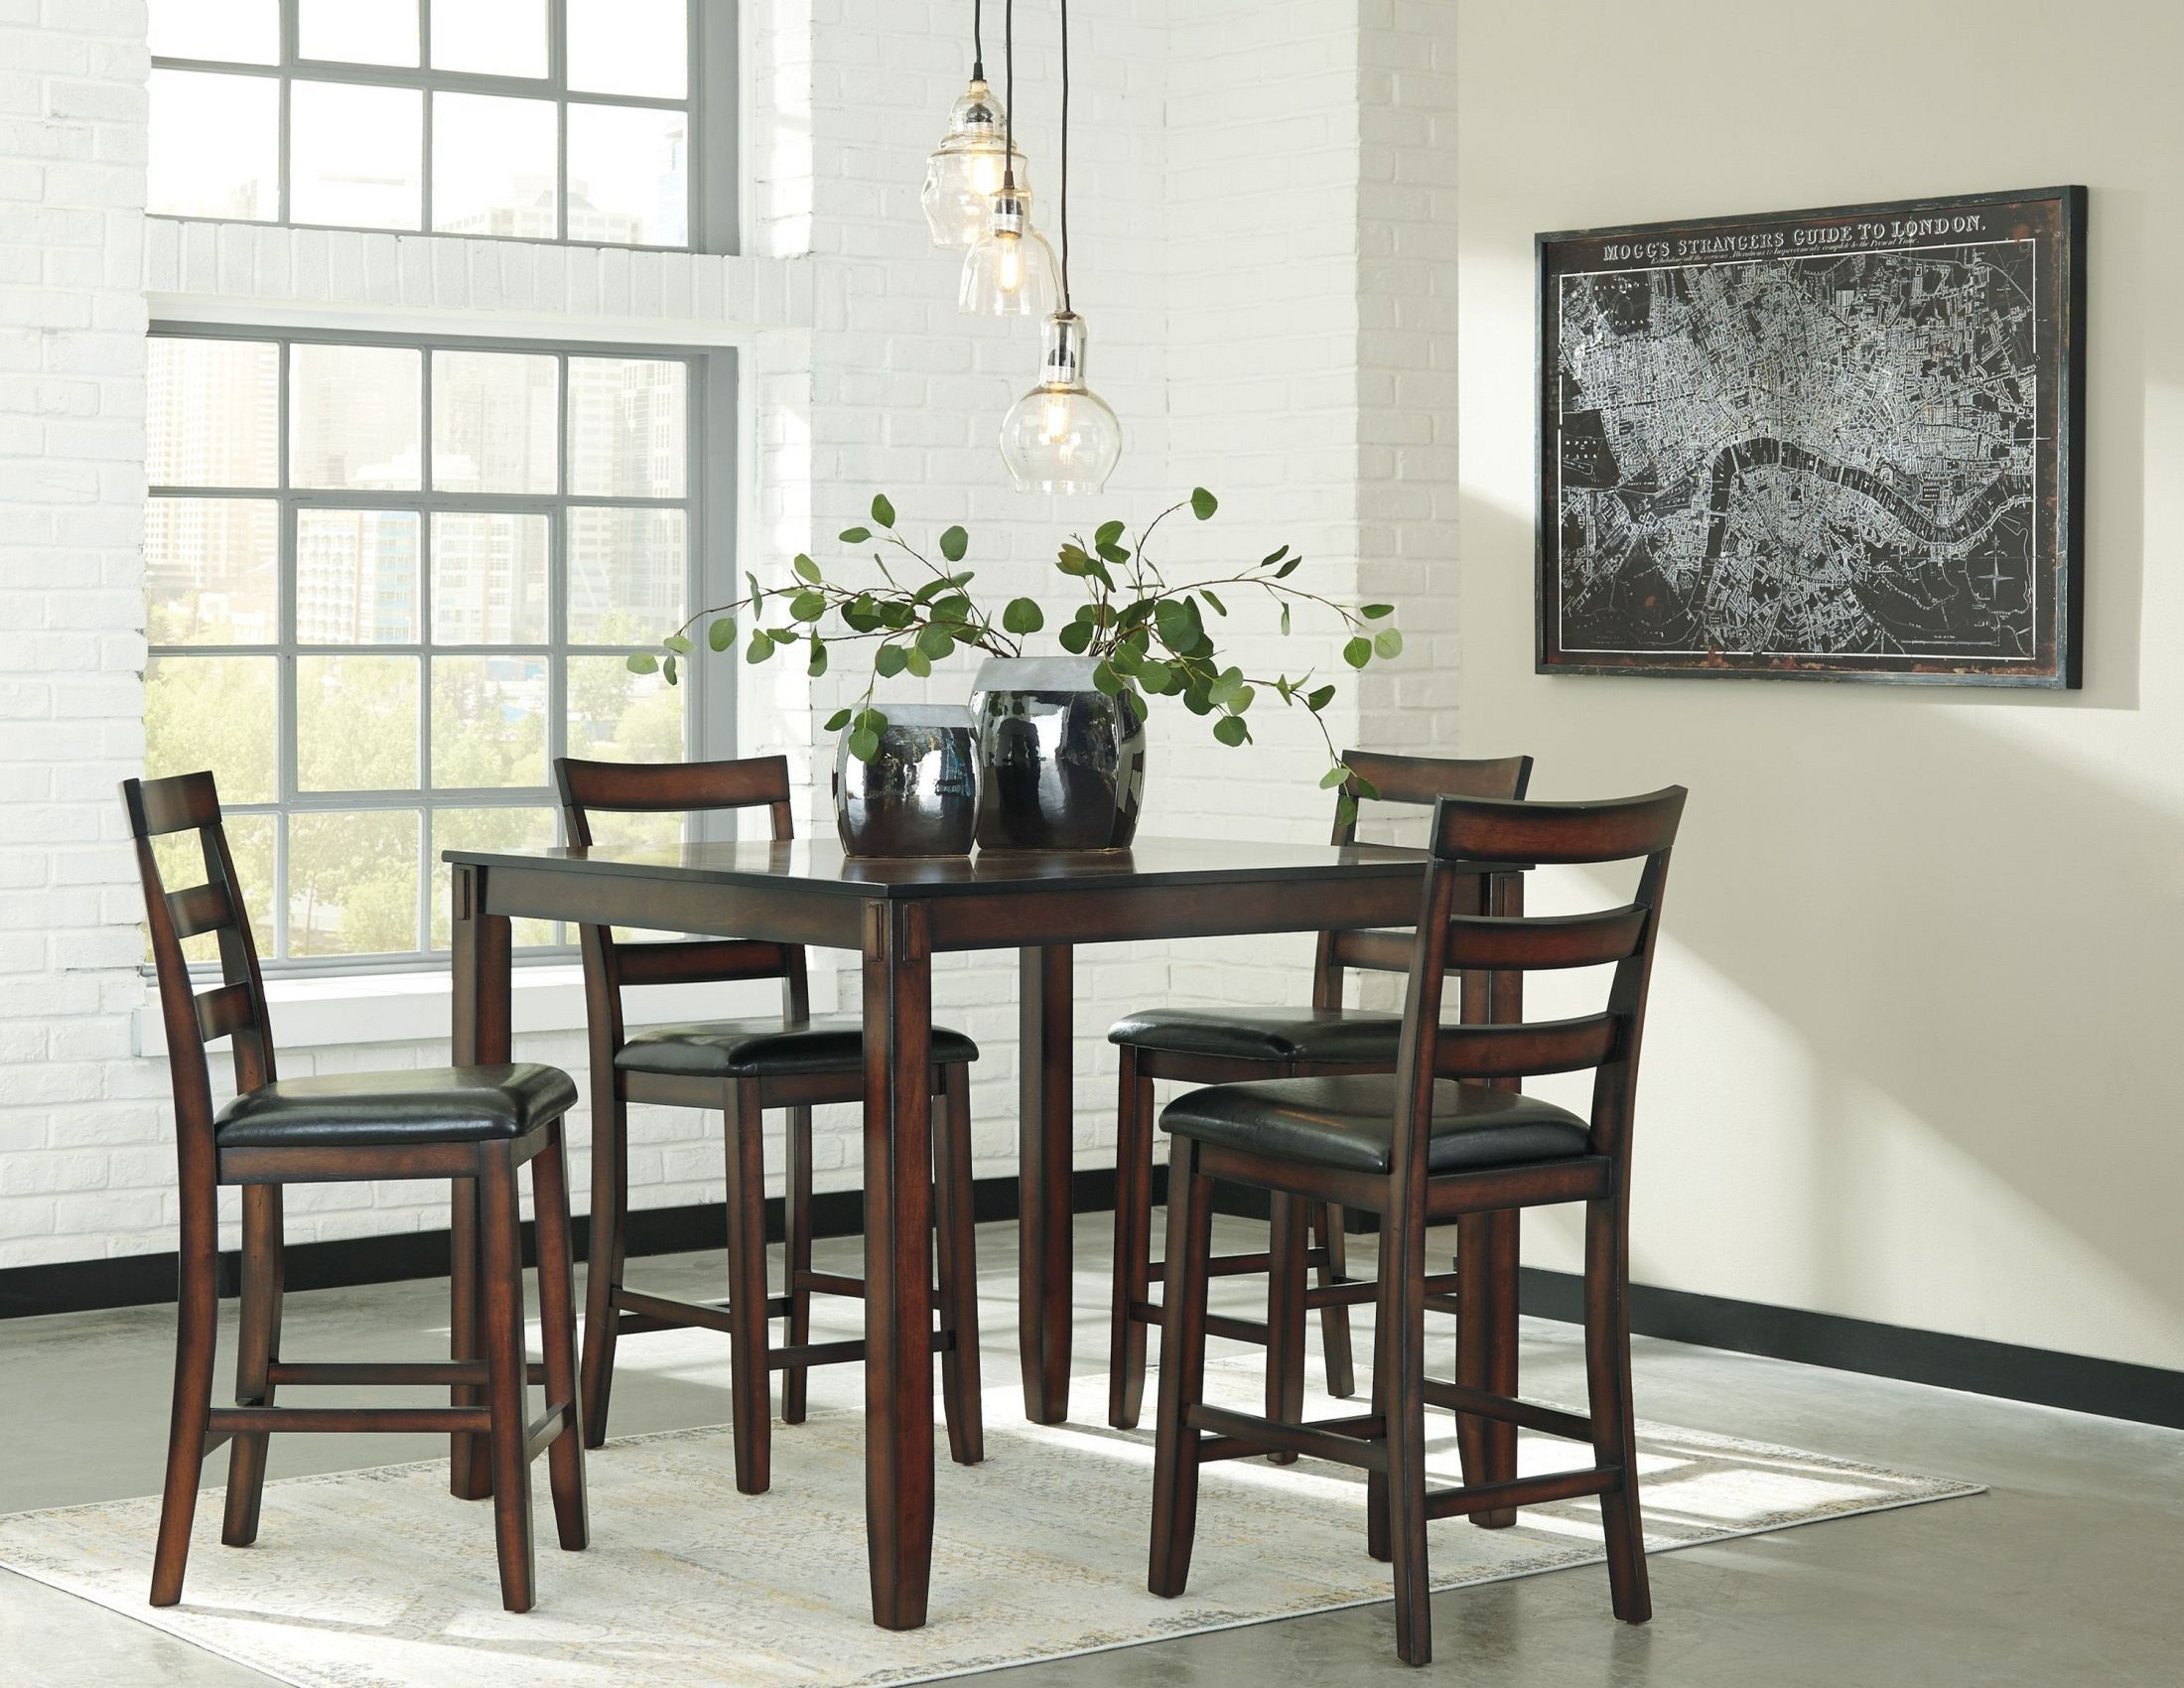 Popular Coviar Brown 5 Piece Counter Height Dining Room Set From Ashley With Regard To Lonon 3 Piece Dining Sets (View 14 of 20)